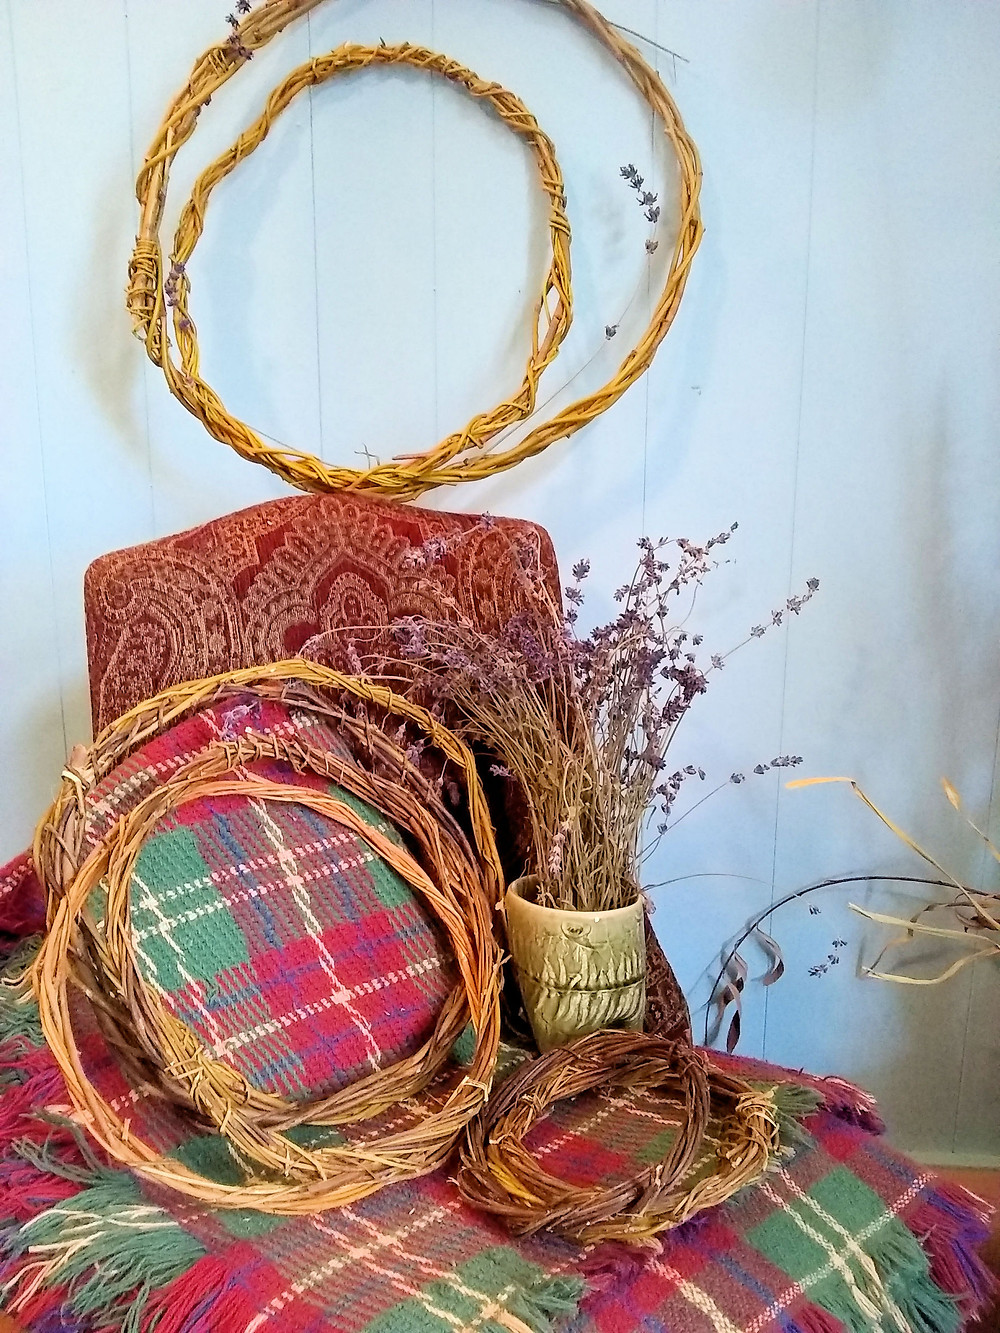 Golden Weeping Willow wreaths in varying sizes arranged against a tapestry chair.